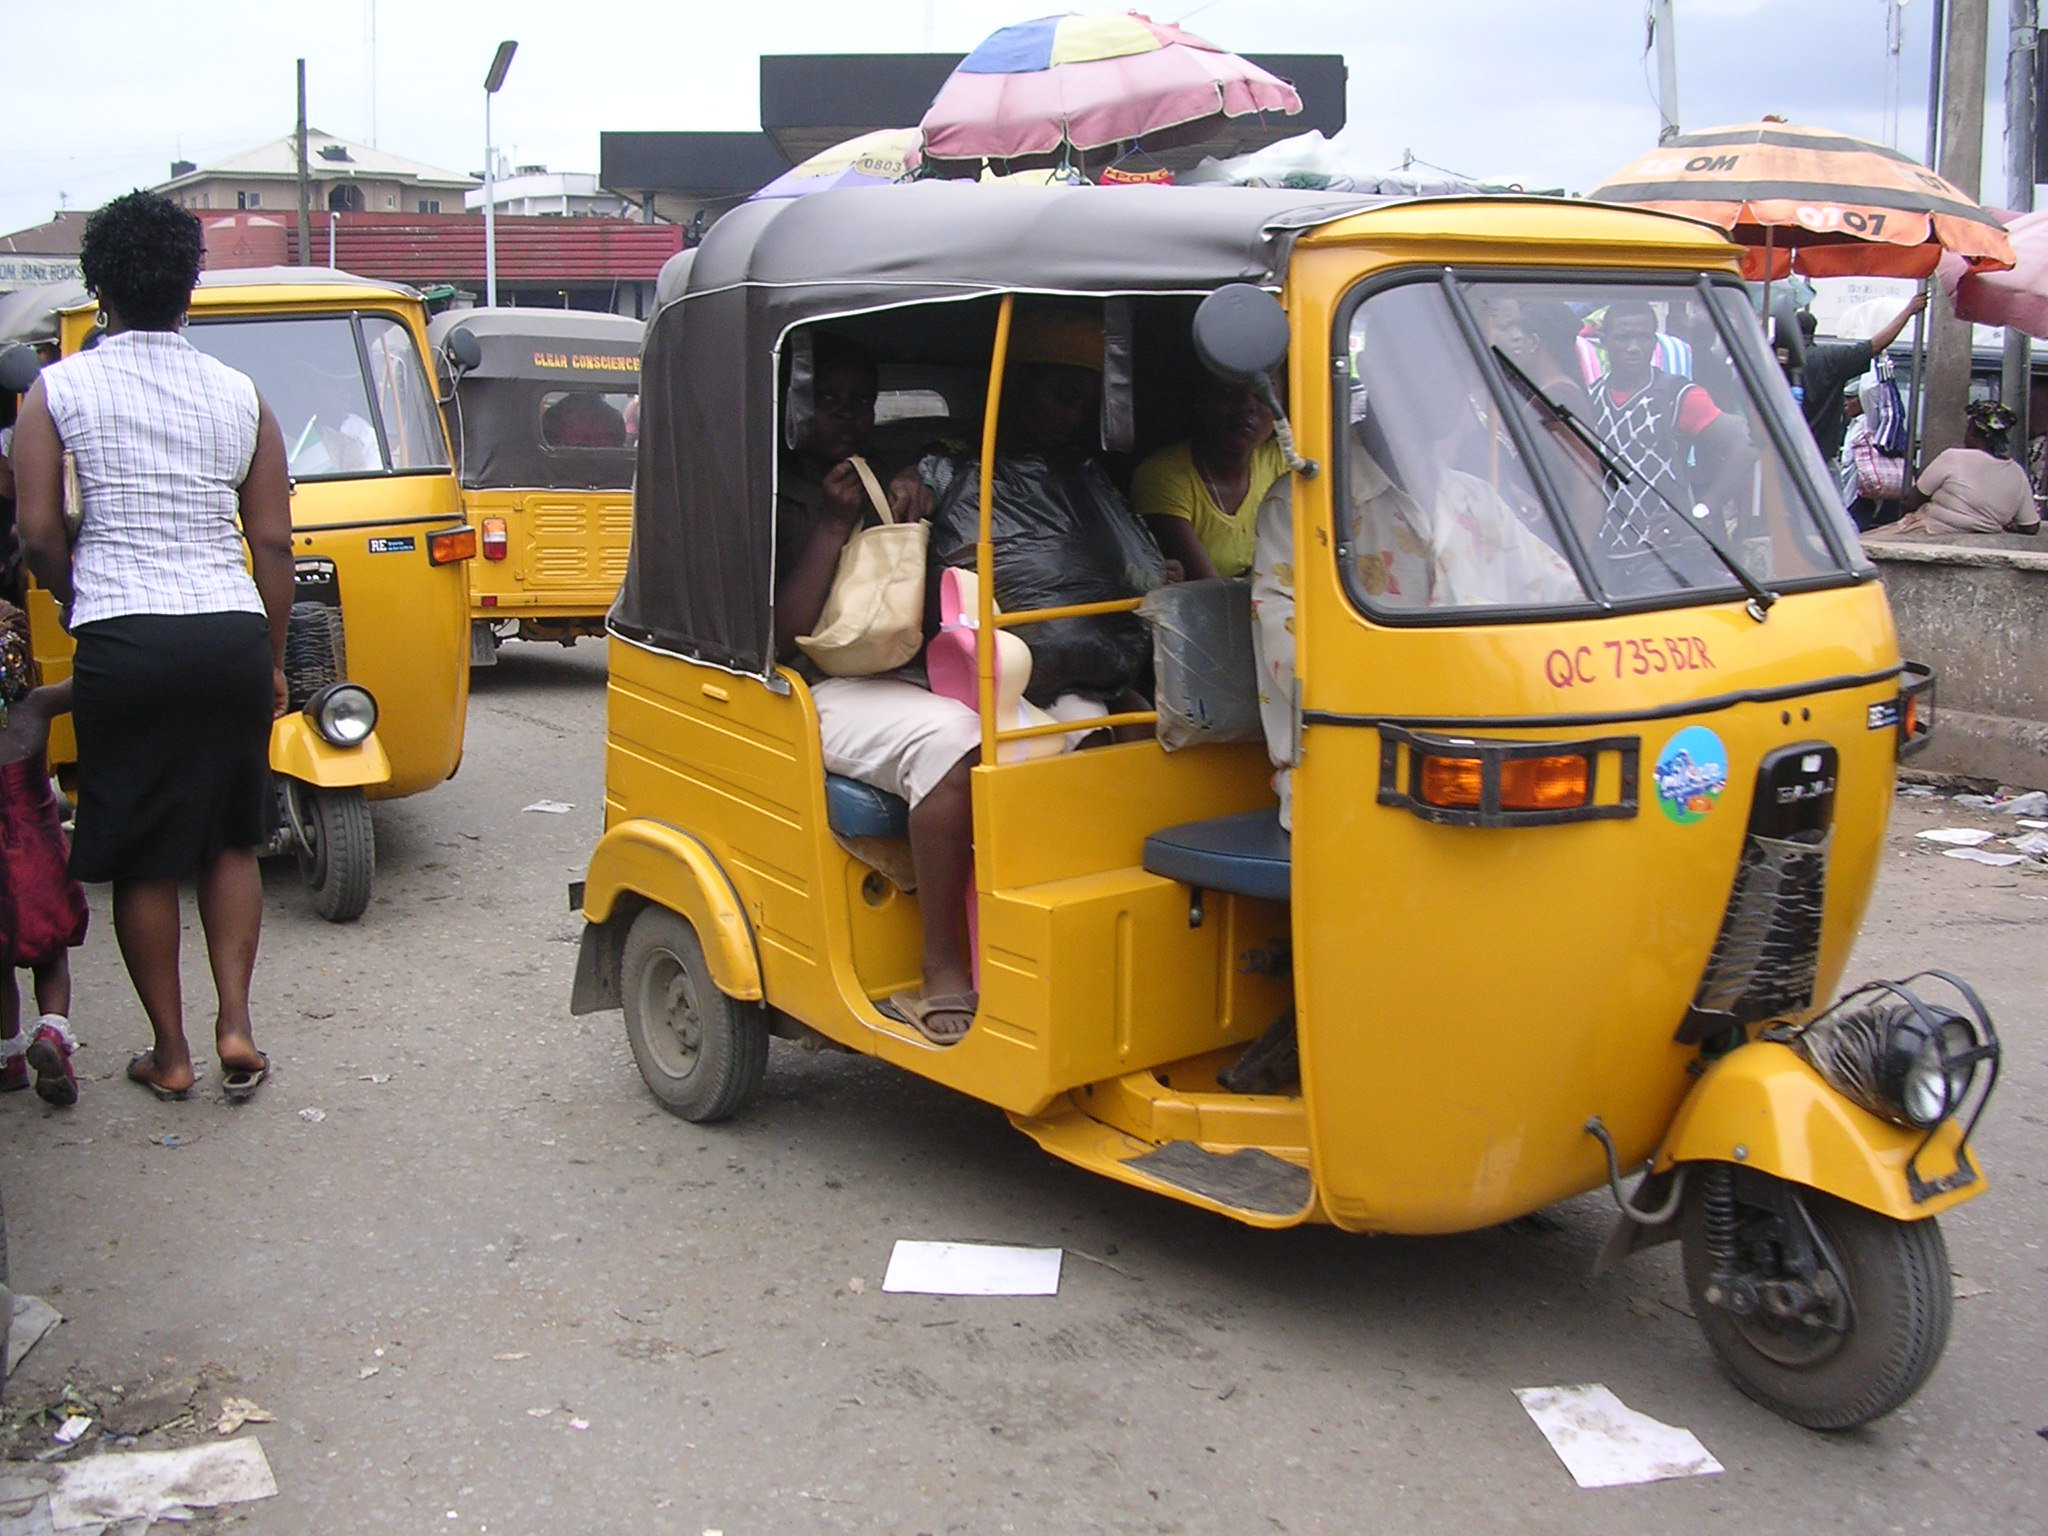 Ebonyi task force members arrested for allegedly brutalizing Keke rider